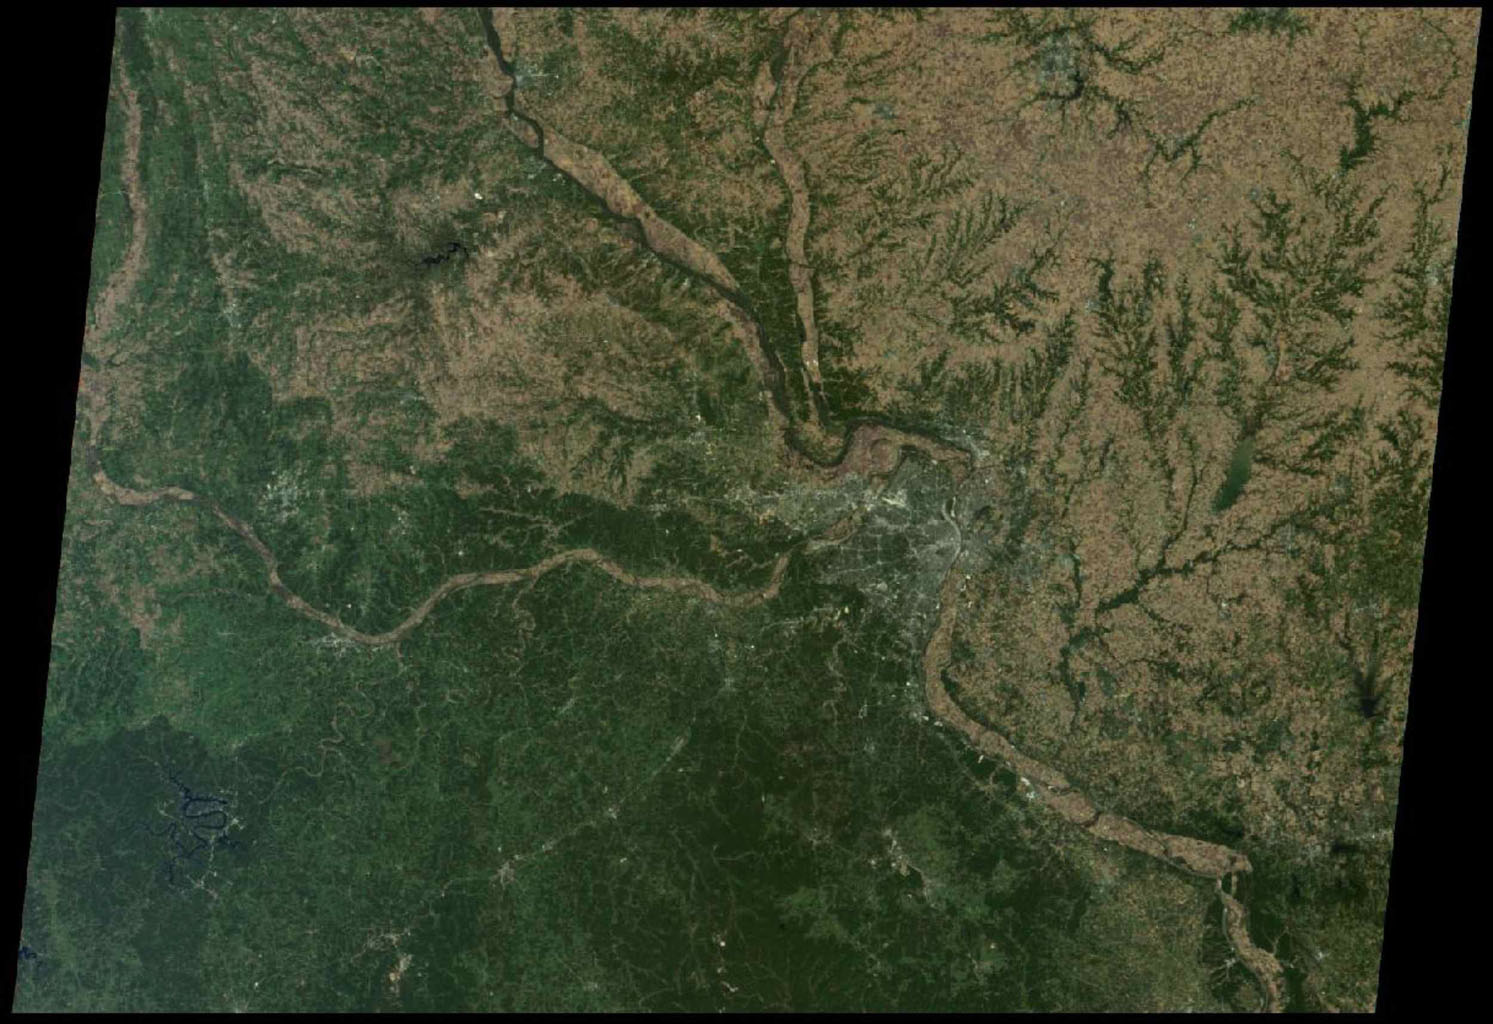 St. Louis, Missouri is tucked in a bend of the Mississippi River, just south of the point at which the Illinois River joins the larger Mississippi as seen by NASA's Terra spacecraft on October 15, 2005.